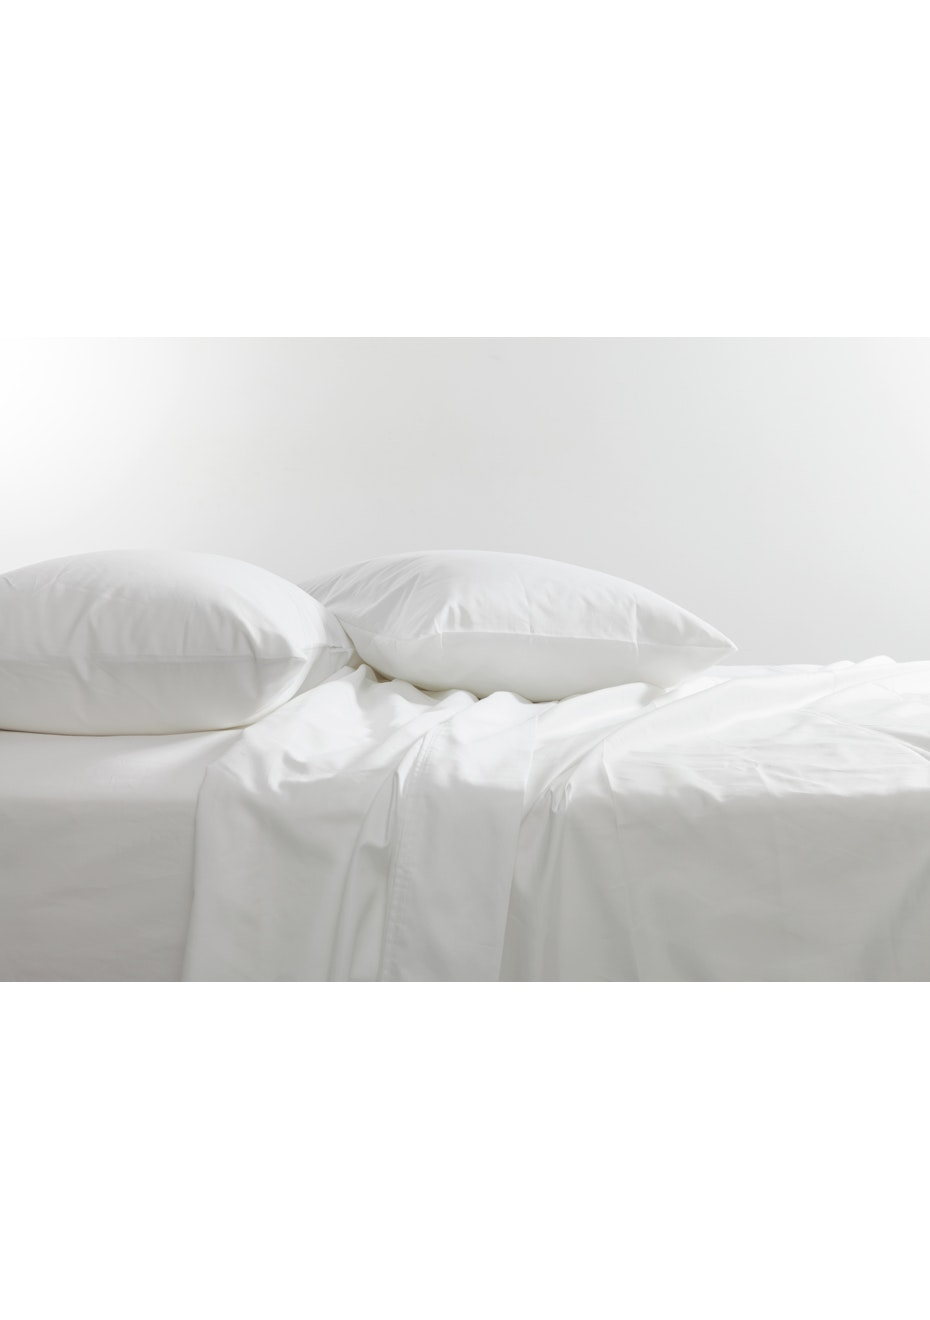 Canningvale - Palazzo Royale 1000 Thread Count Premium Blend Sheet Set Queen Bed Crisp White